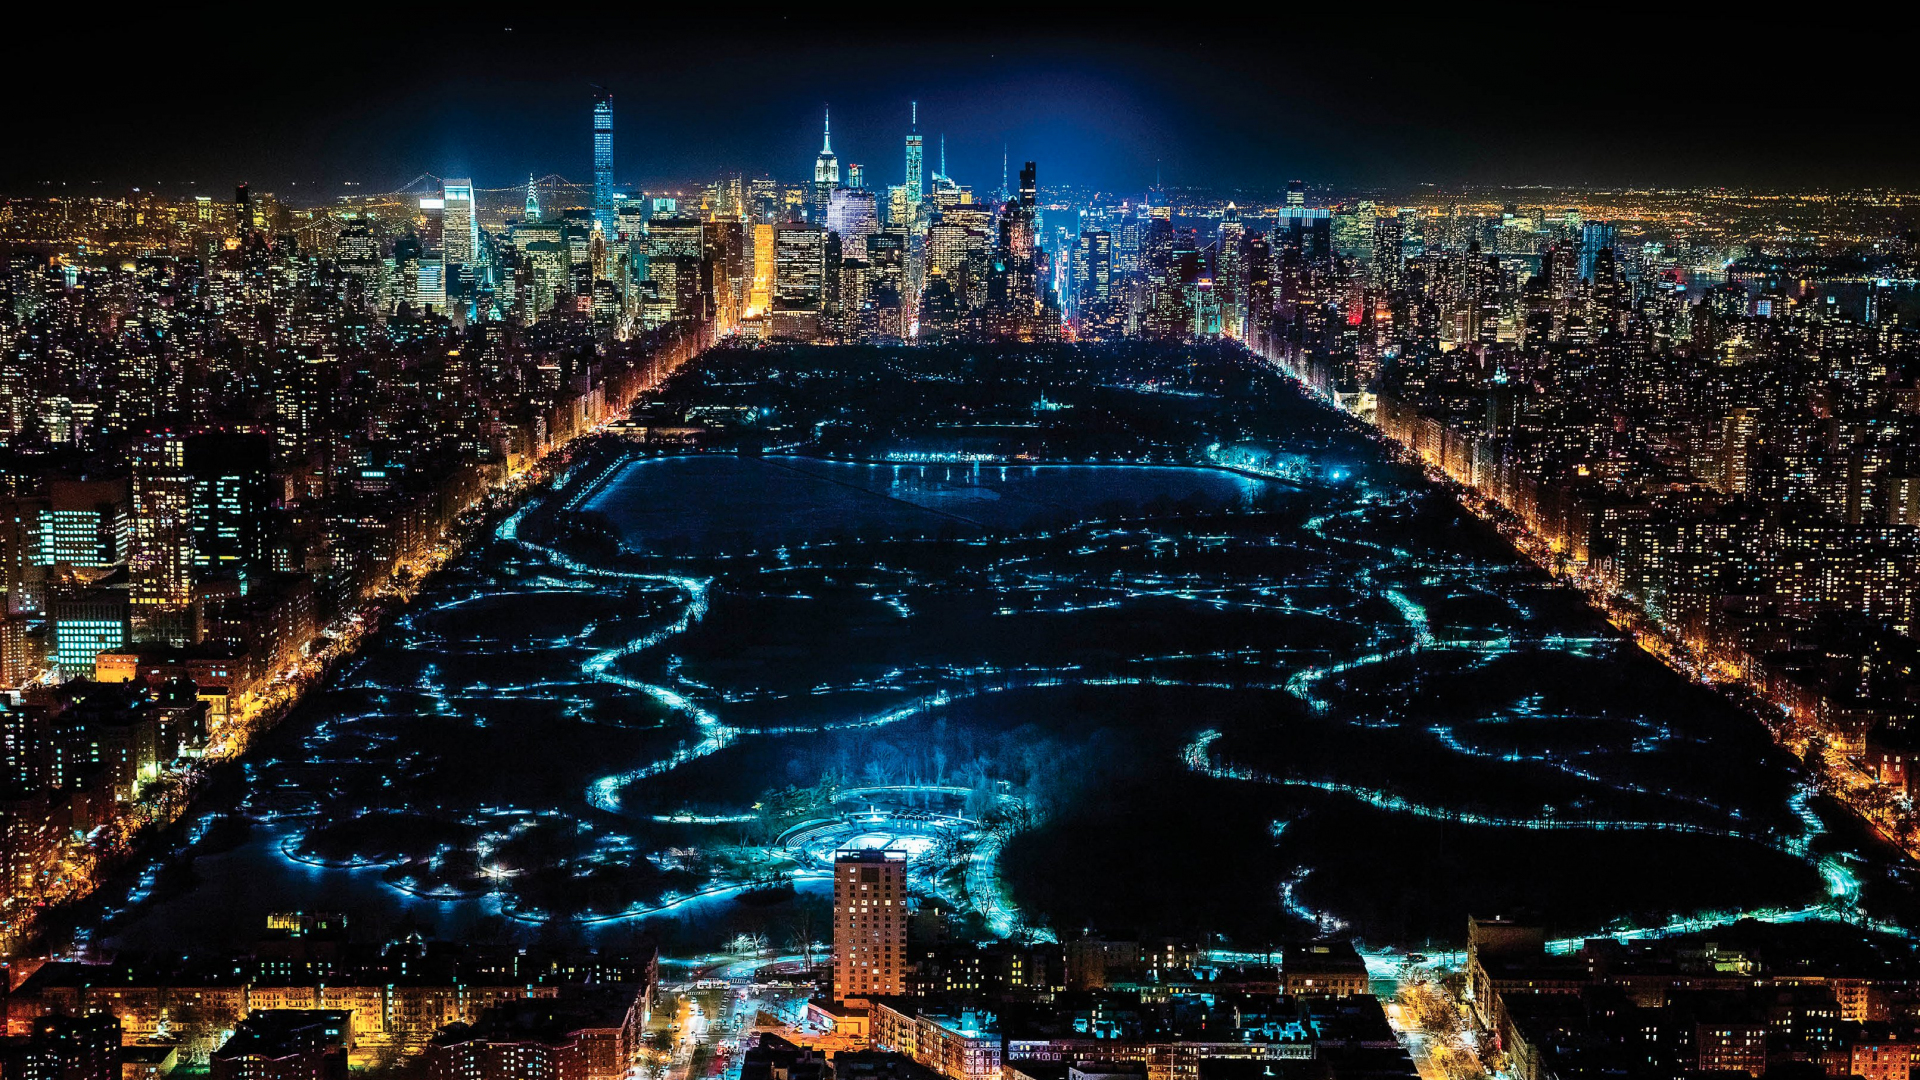 Desktop Wallpaper New York City In Night Hd Image Picture Background Twsm9x